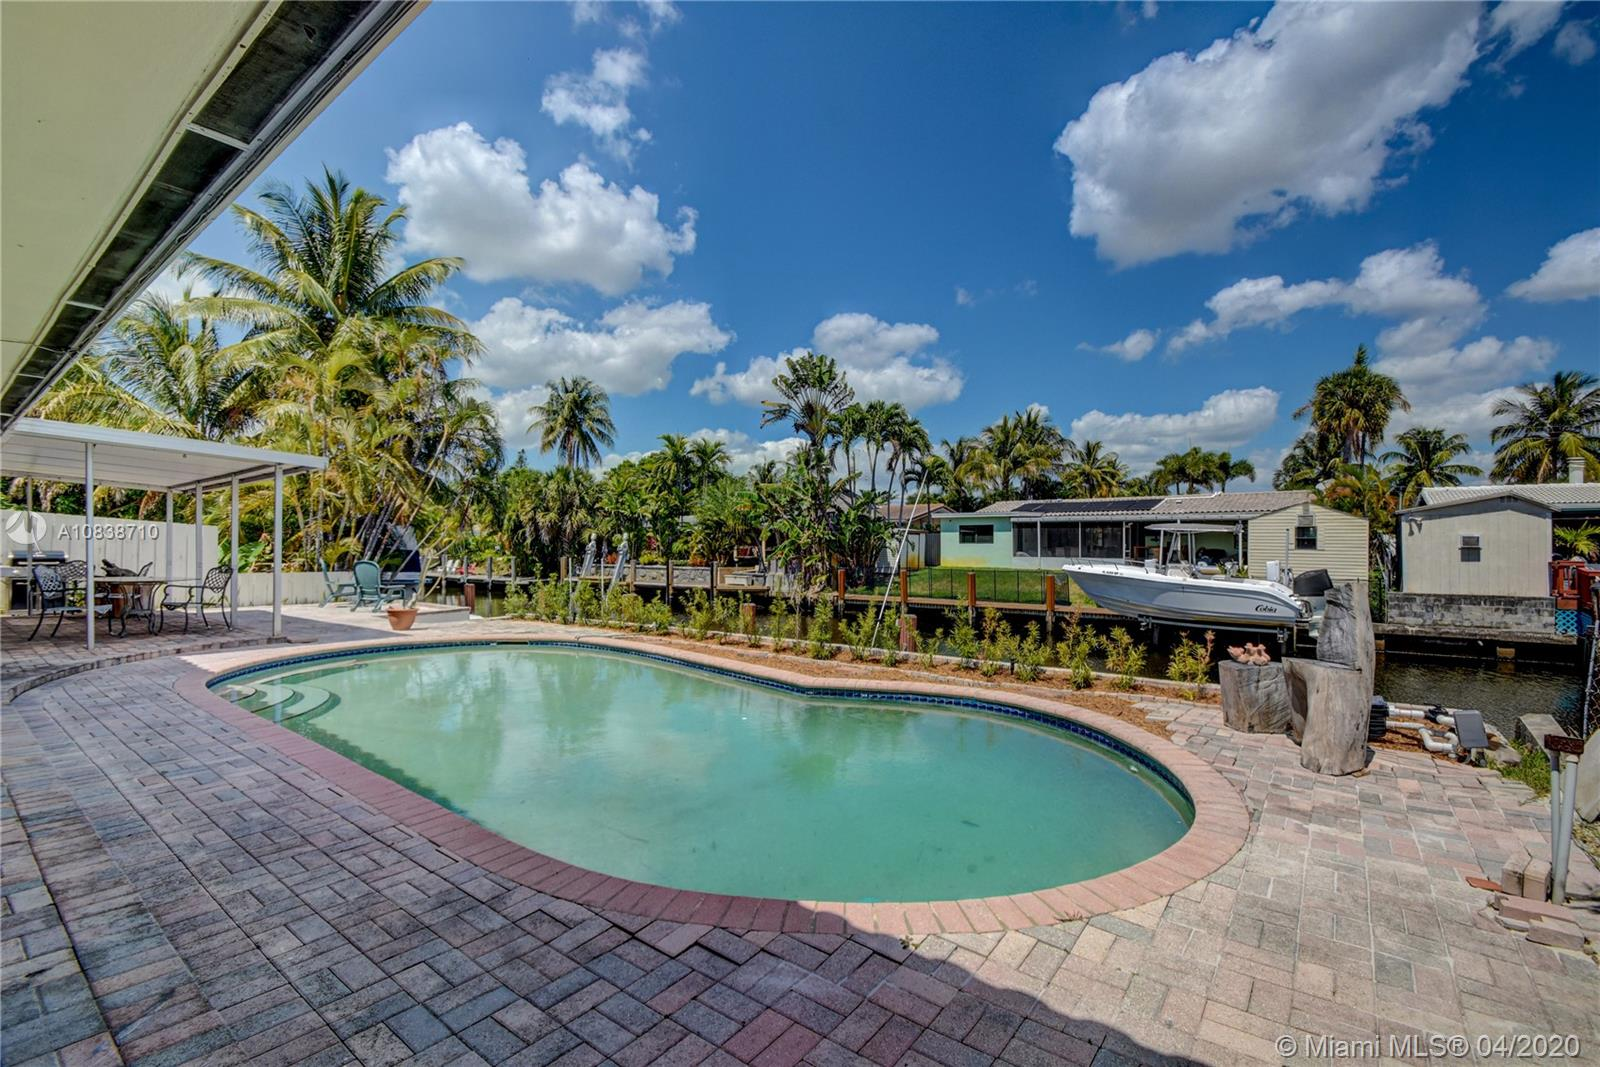 65 feet of waterfront with NO FIXED BRIDGES, 3 bedroom, 2 bathroom, with updated pool and oversized 2 Car Garage (30x24). Location can not be beat~ just off the North Fork of the New River and close to downtown and I-95!  Terrazzo flooring throughout except kitchen.  Lot is 115 x 65.  Easy boat ride to the ocean for boating & fishing enthusiast. NO HOA and NOT in a flood zone.  Showing by appointment with notice.